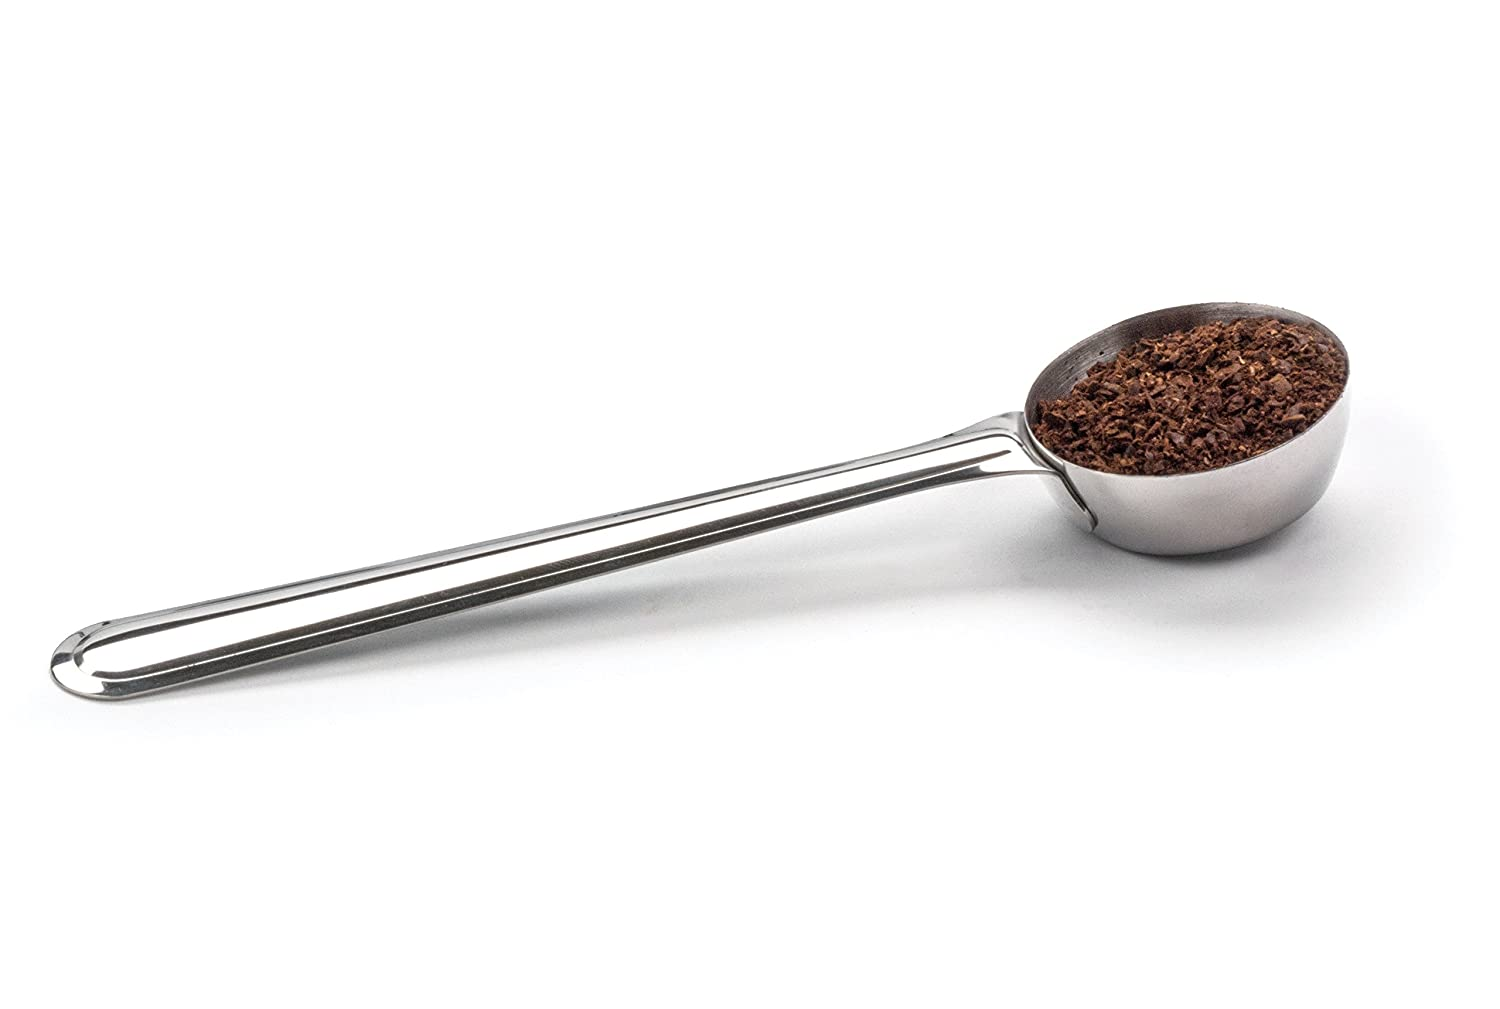 Espresso Supply Stainless Steel Doser Scoop, 1-Ounce Inc 03730